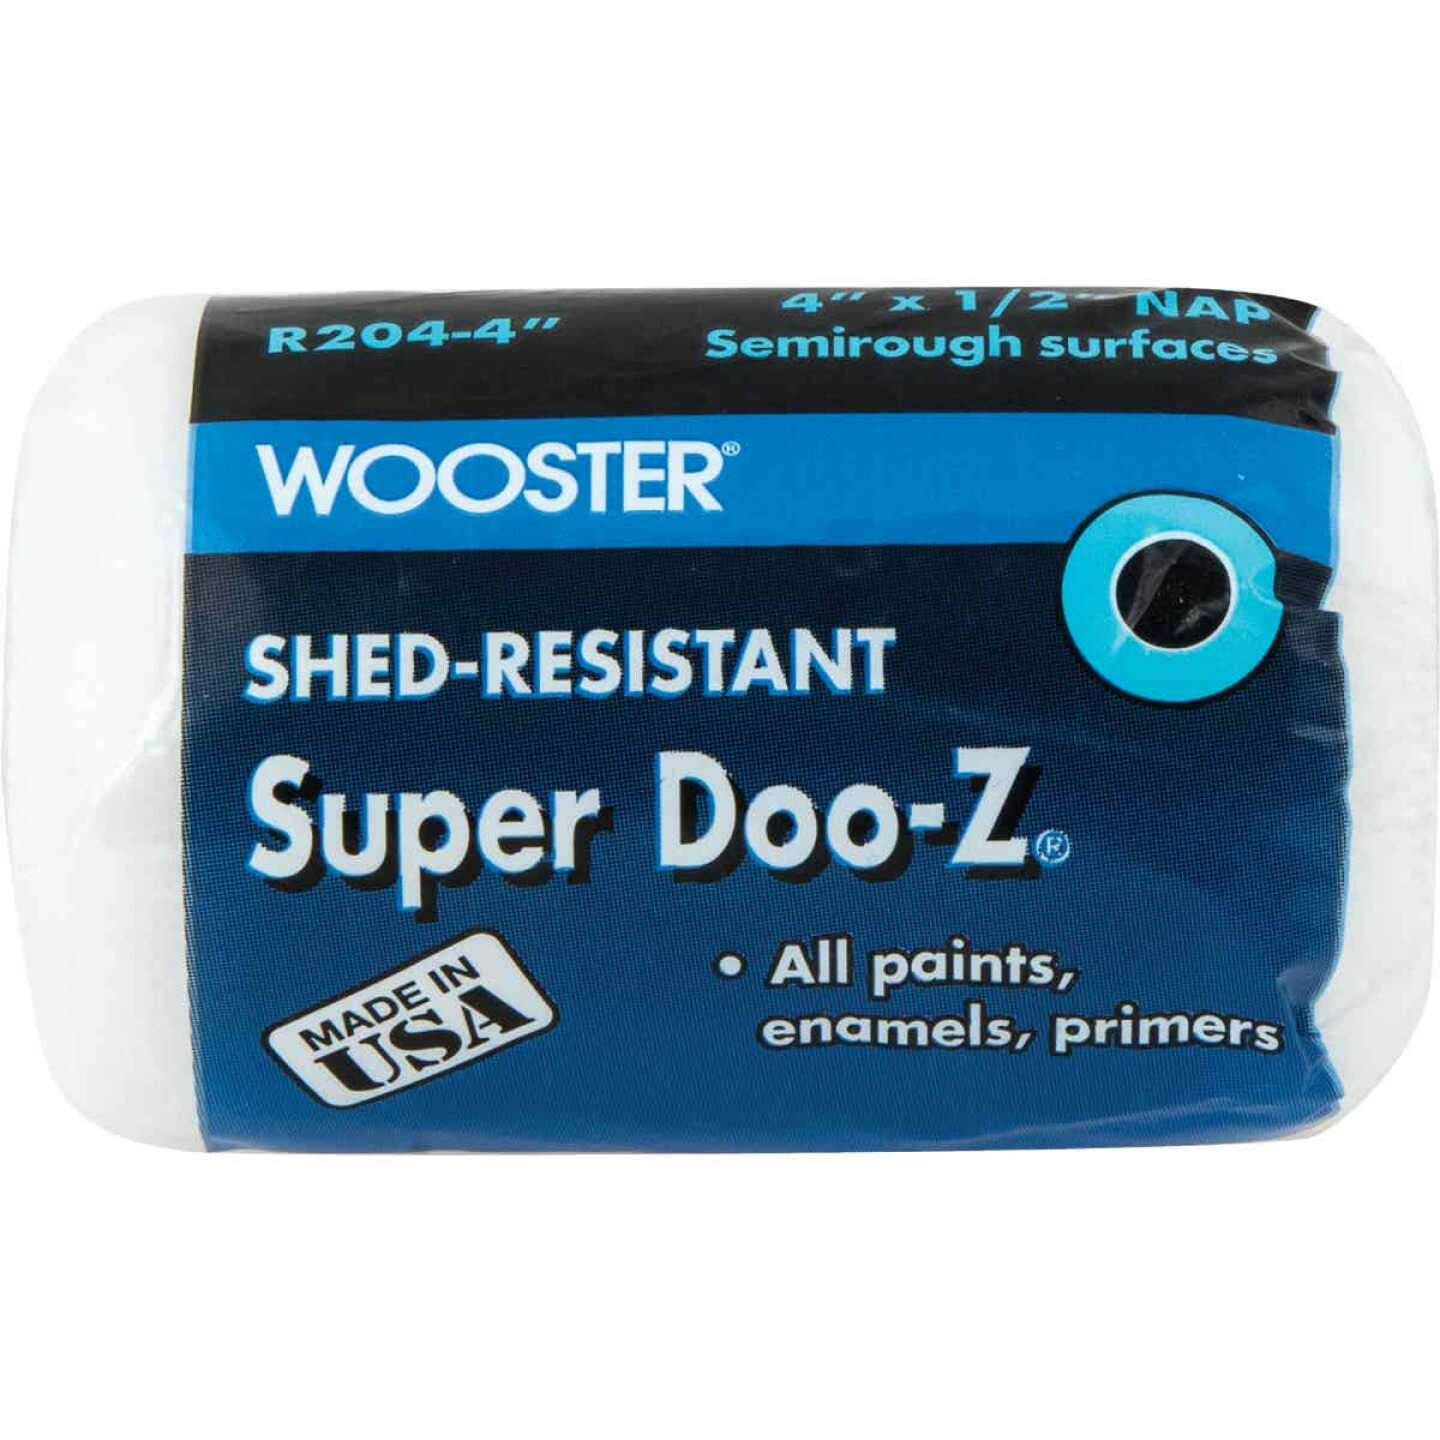 Wooster Super Doo-Z 4 In. x 1/2 In. Woven Fabric Roller Cover Image 1